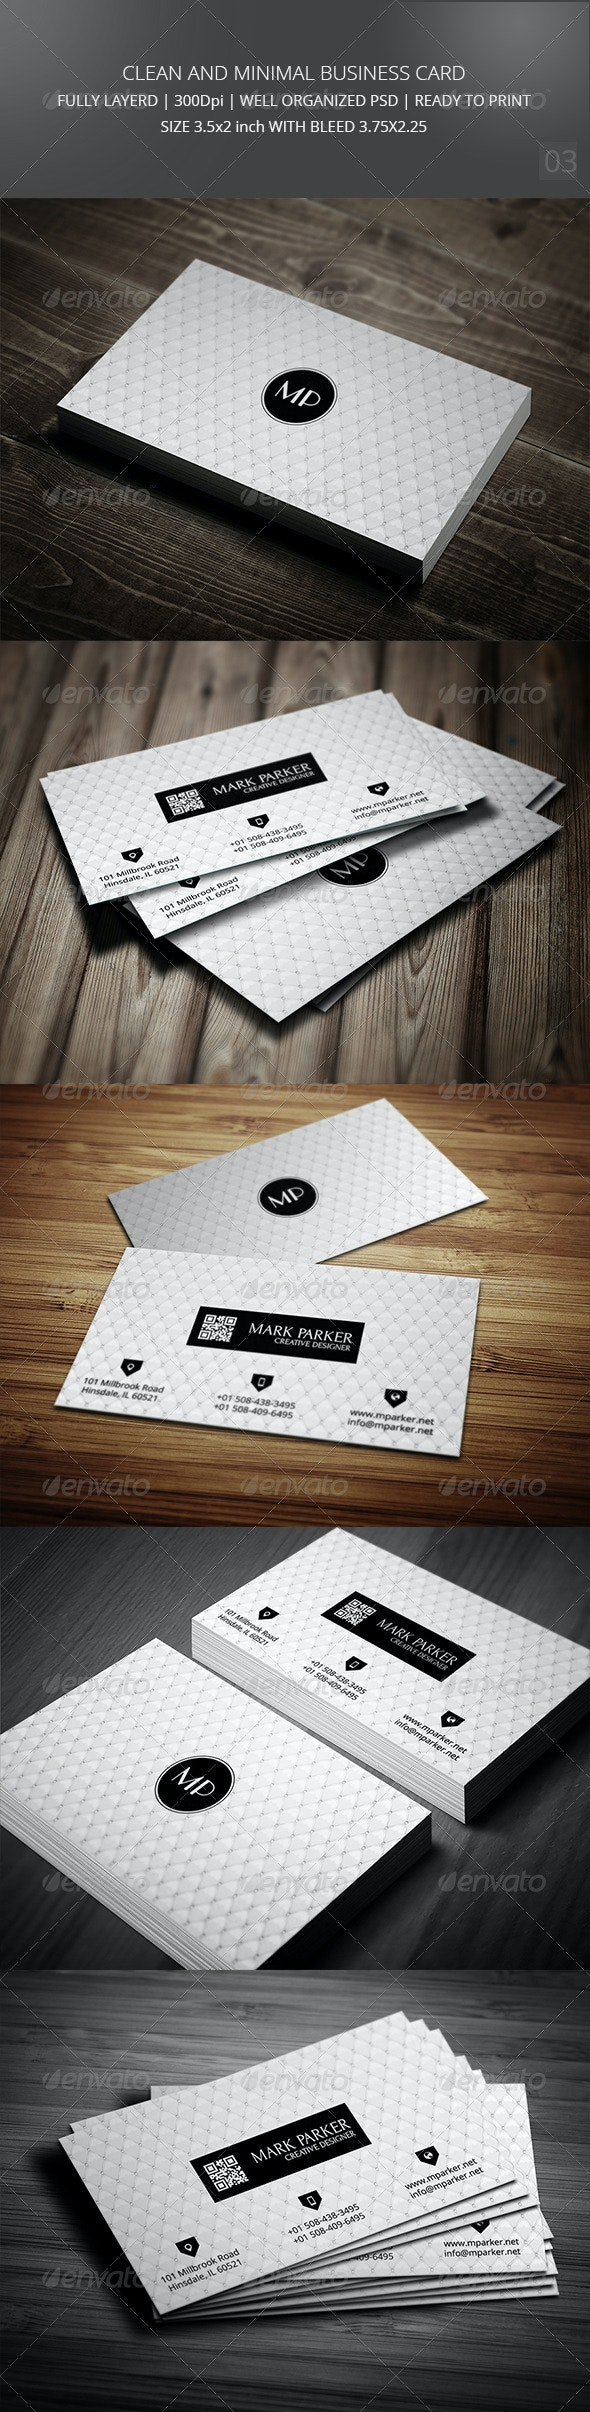 Royal White Business Card  - Retro/Vintage Business Cards